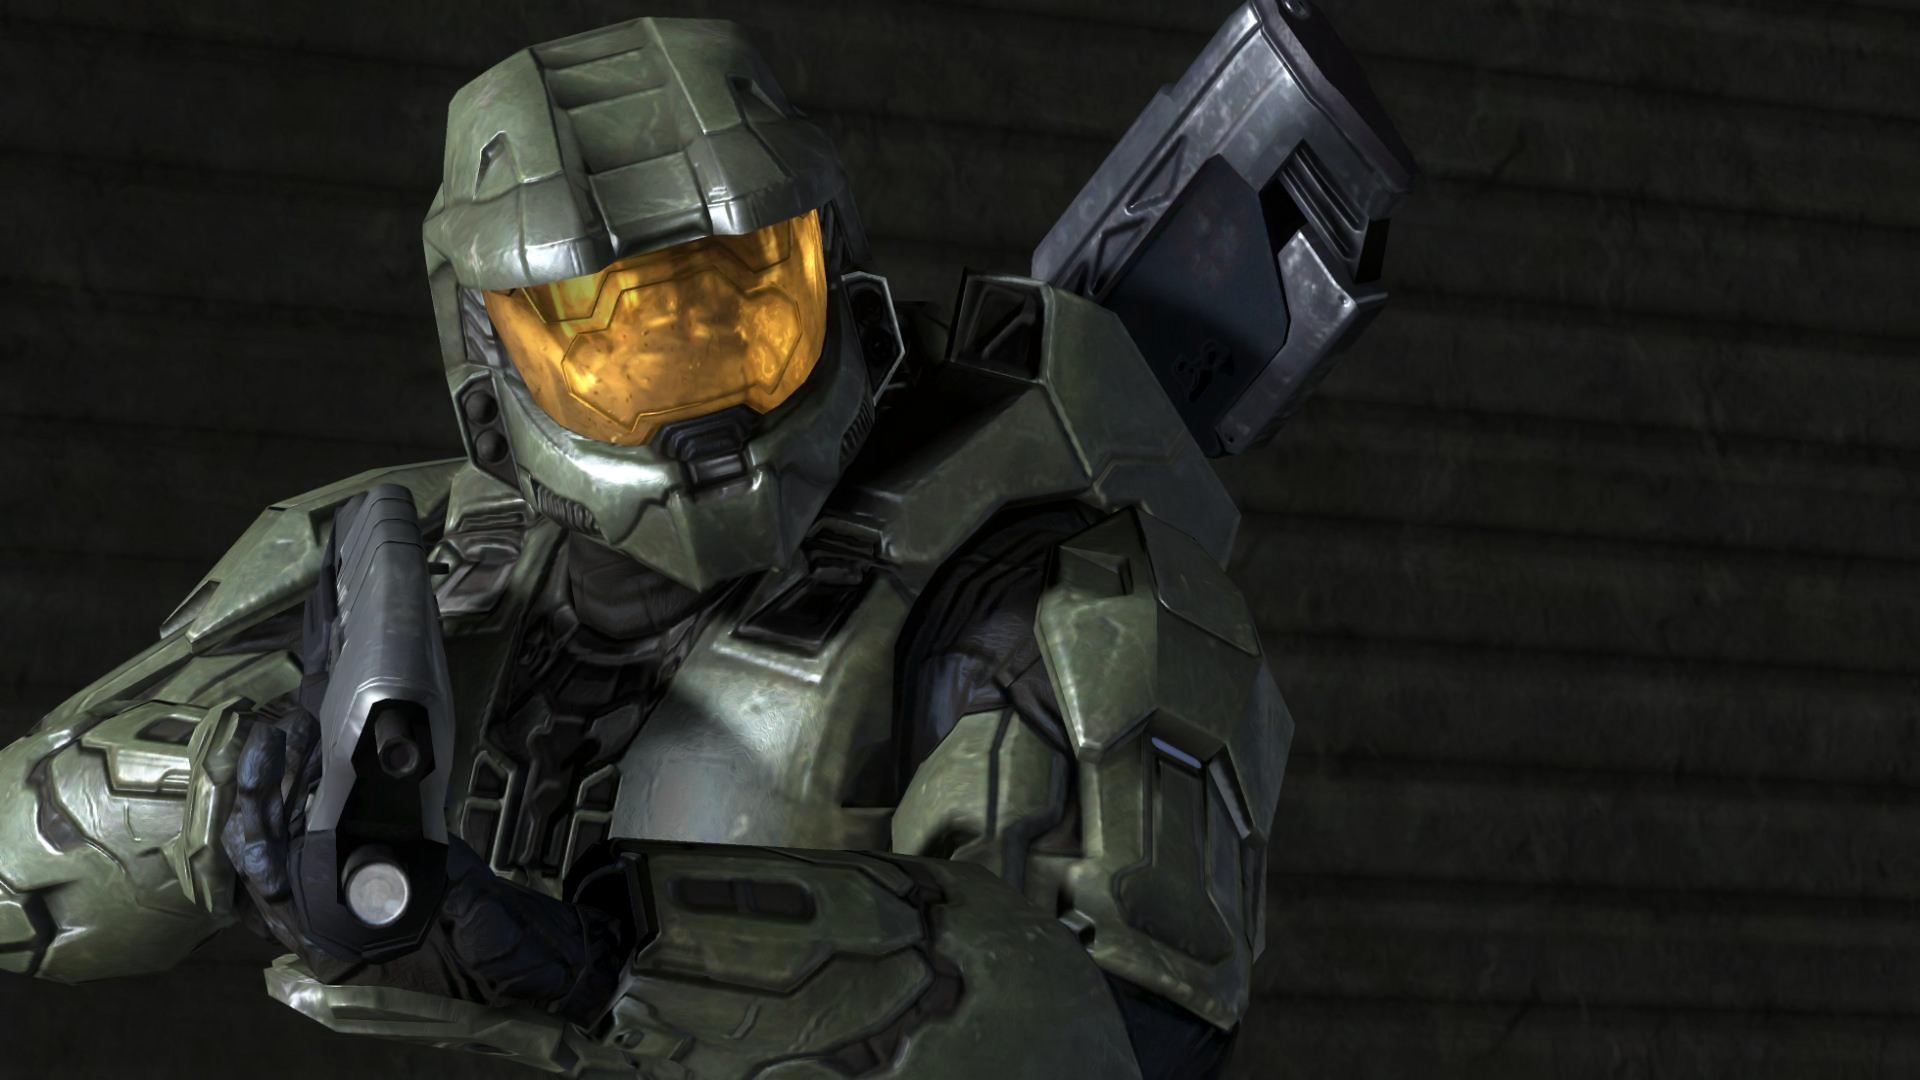 1920x1080 Halo 3 Master Chief Widescreen Background Wallpapers